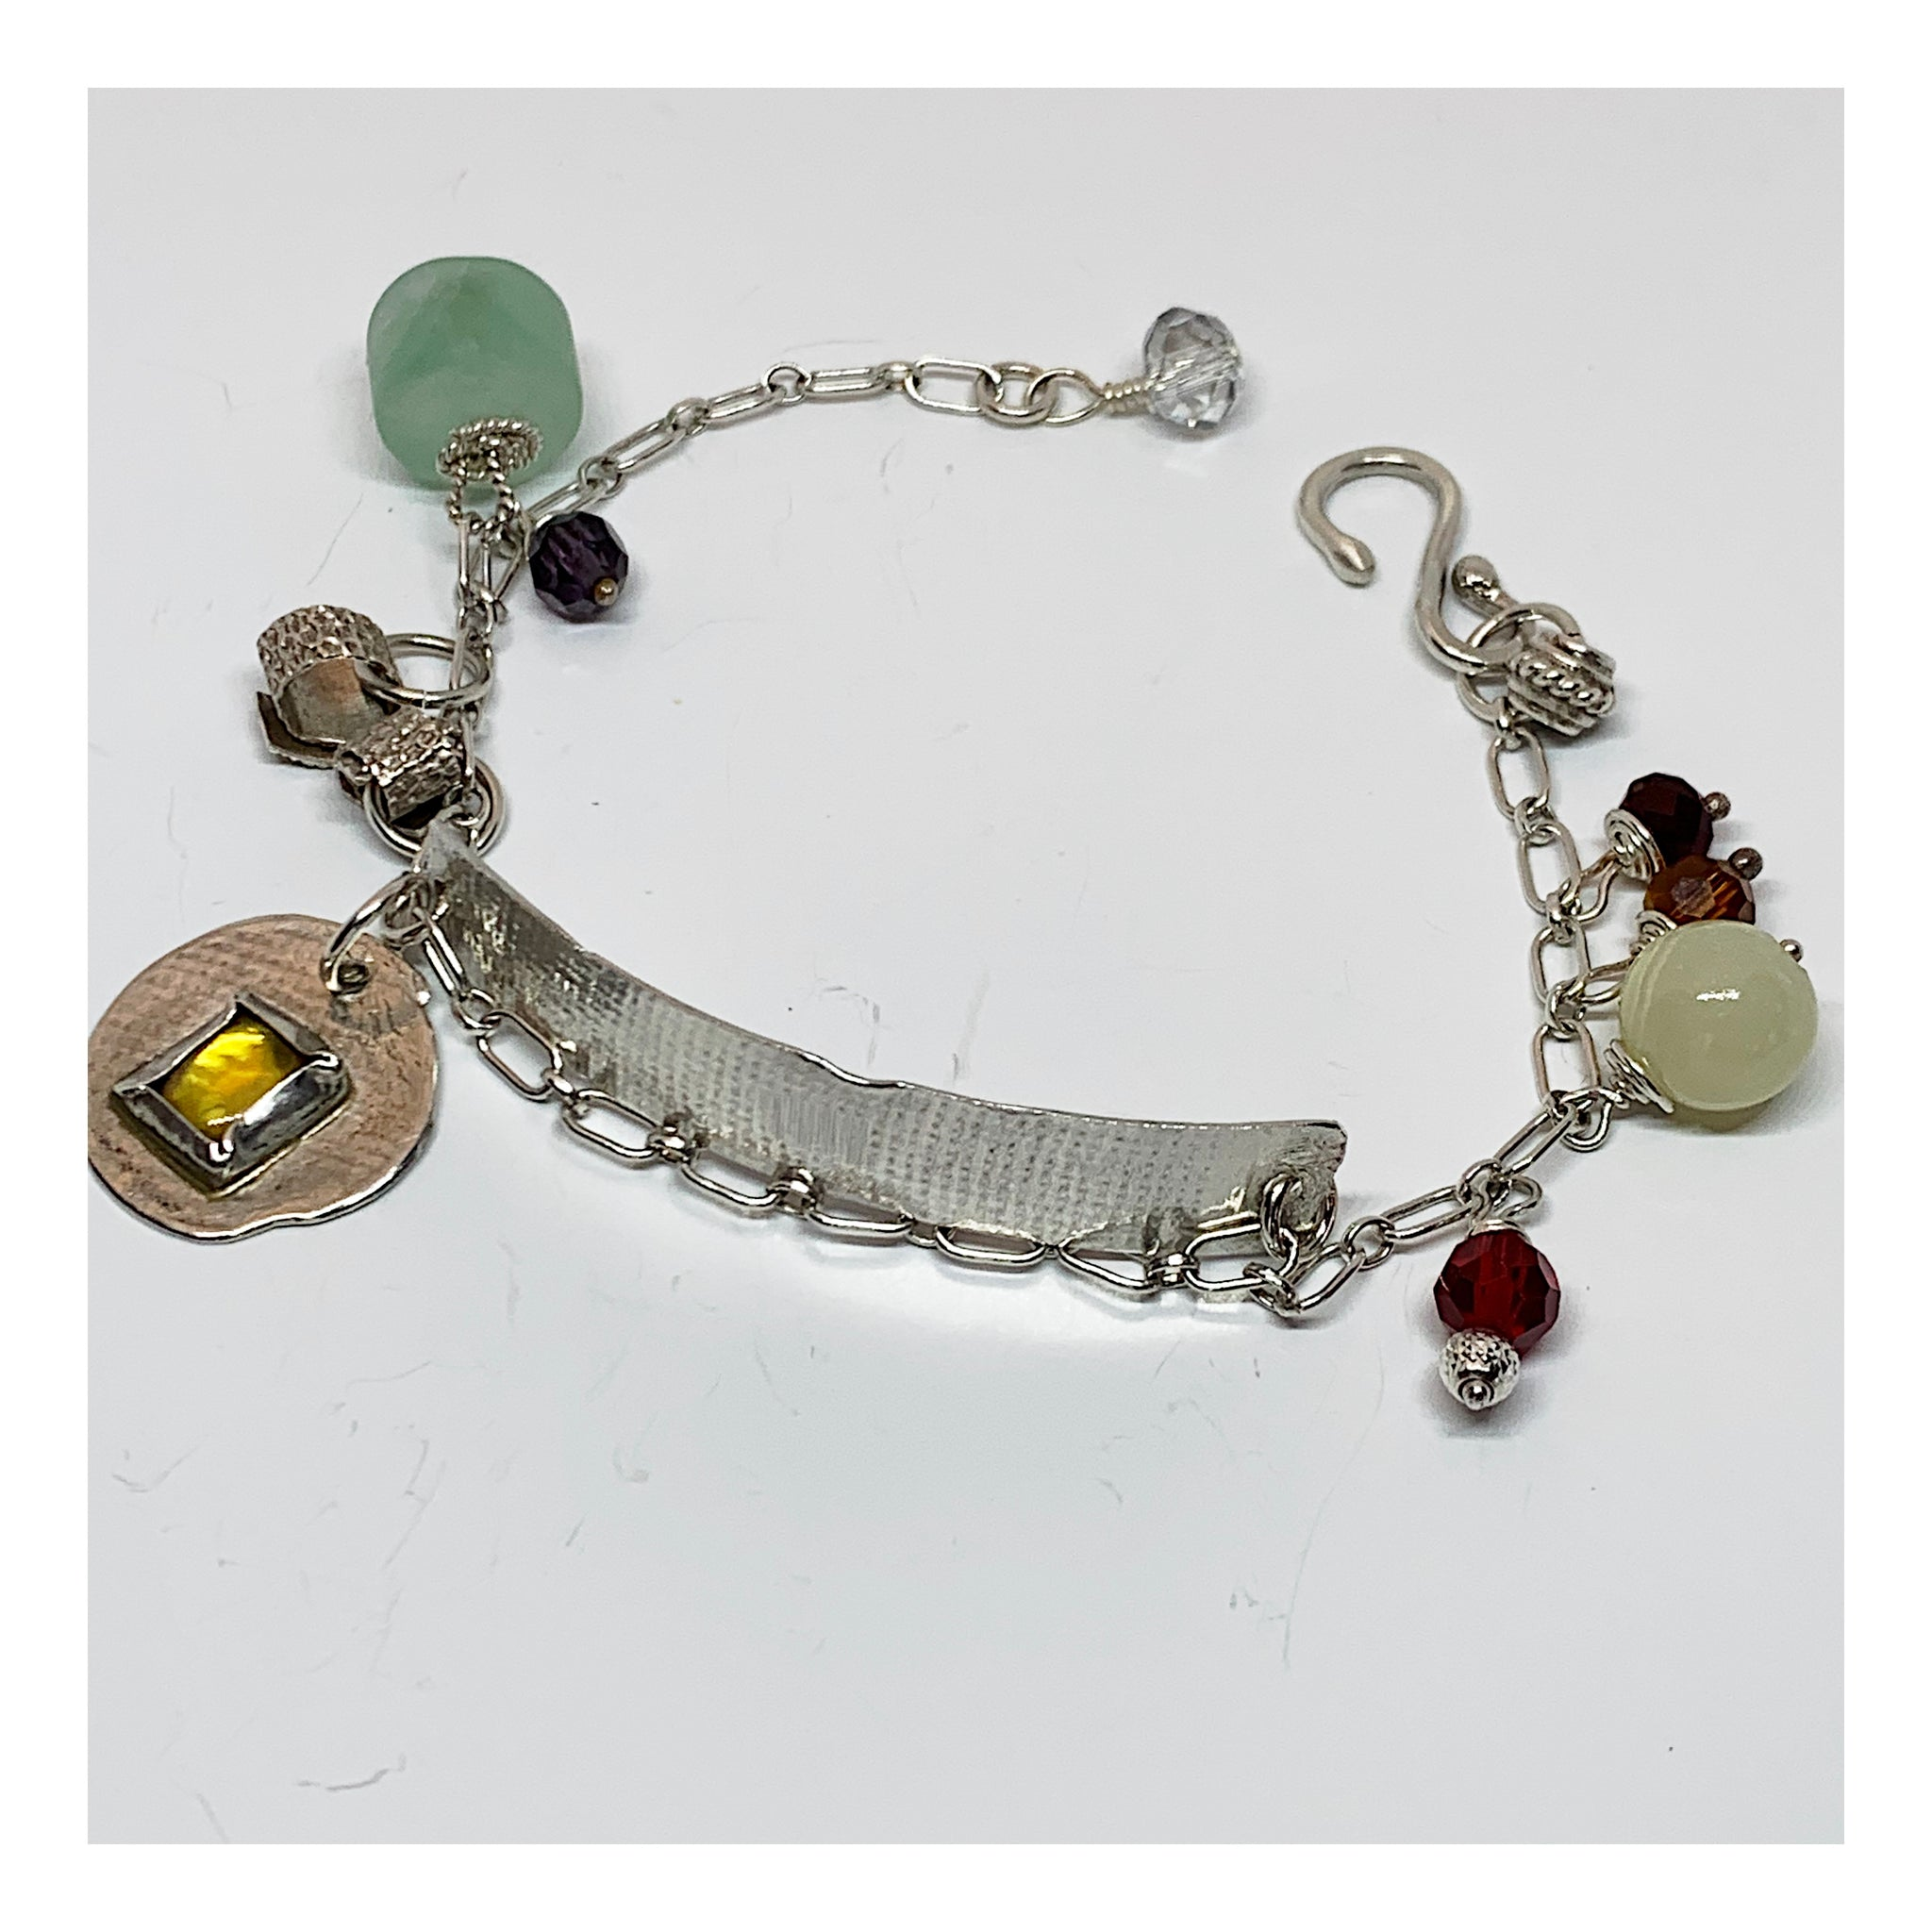 Sterling Silver Chain and Semi Precious Gemstone Bracelet - Unusual One of a Kind Jewelry